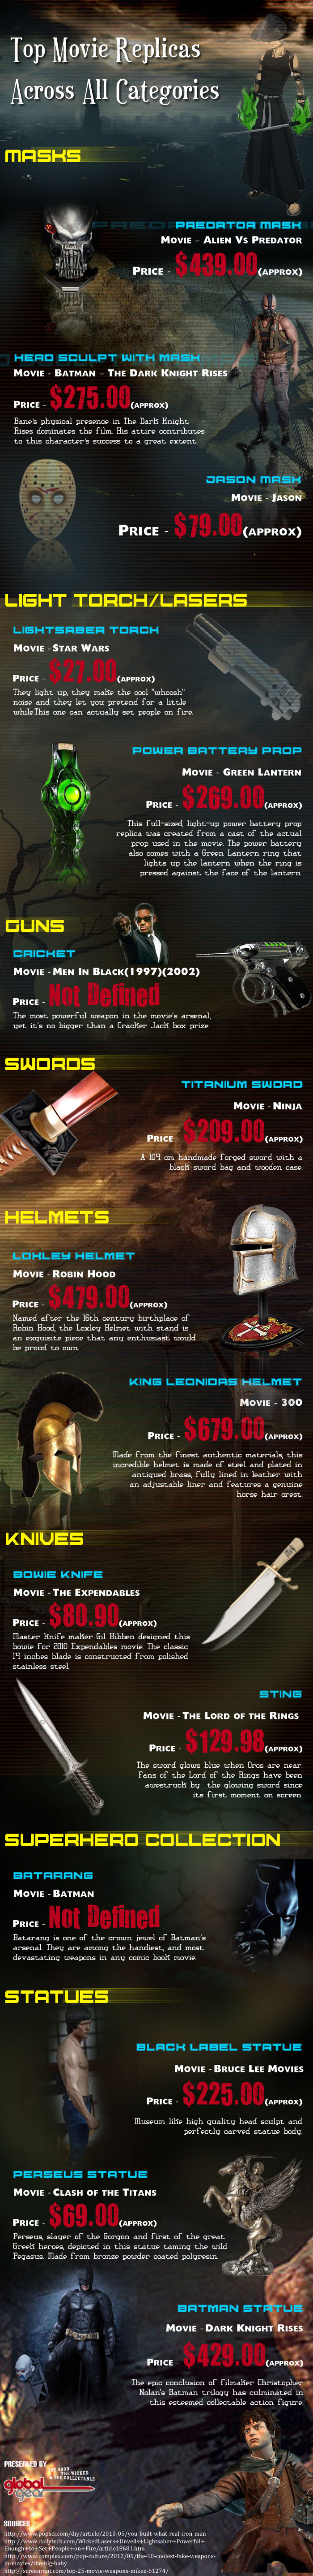 Top Movie Replicas Collectables Across All categories Infographic Infographic